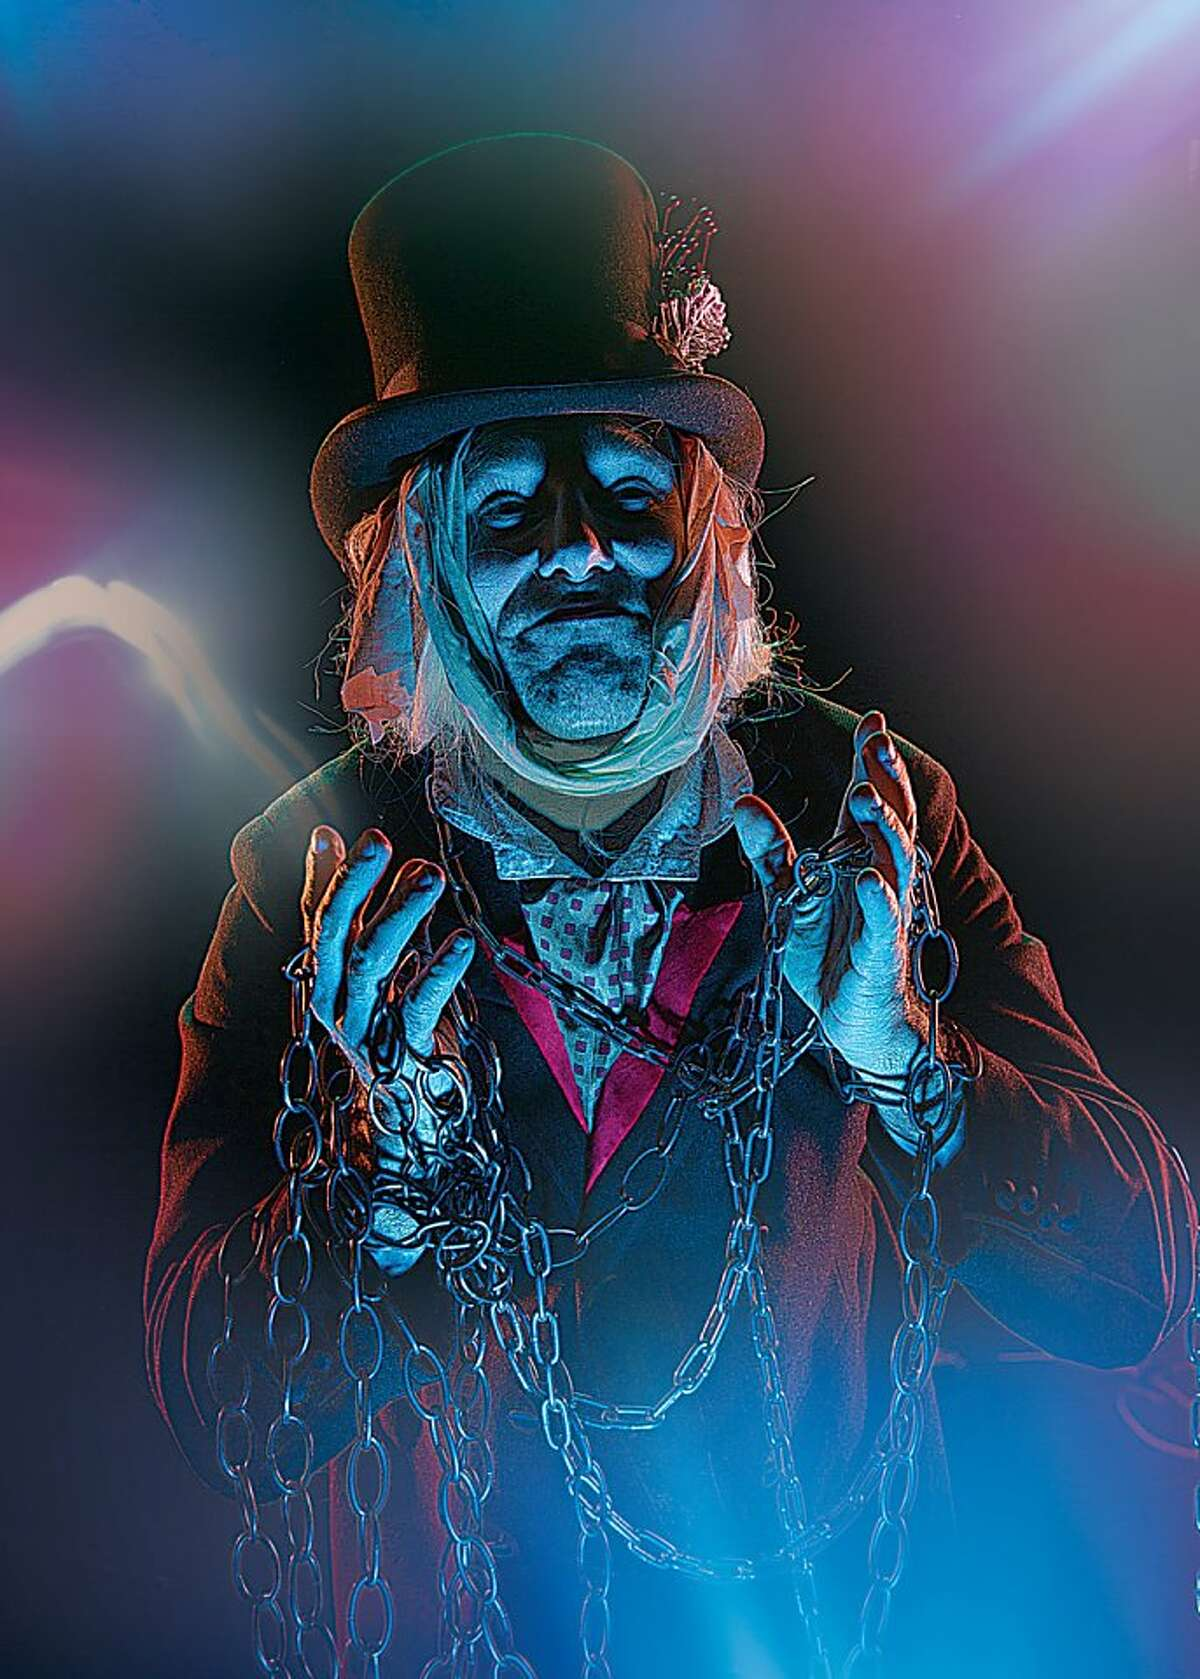 Nov 21 - Dec 22, 2013 | EXTENDED! JACOB MARLEY'S CHRISTMAS CAROL | By Tom Mula Kevin Berne Khris Lewin as Jacob Marley's ghost in Jacob Marley's Christmas Carol, playing at Marin Theatre Company from November 21-December 22. Making